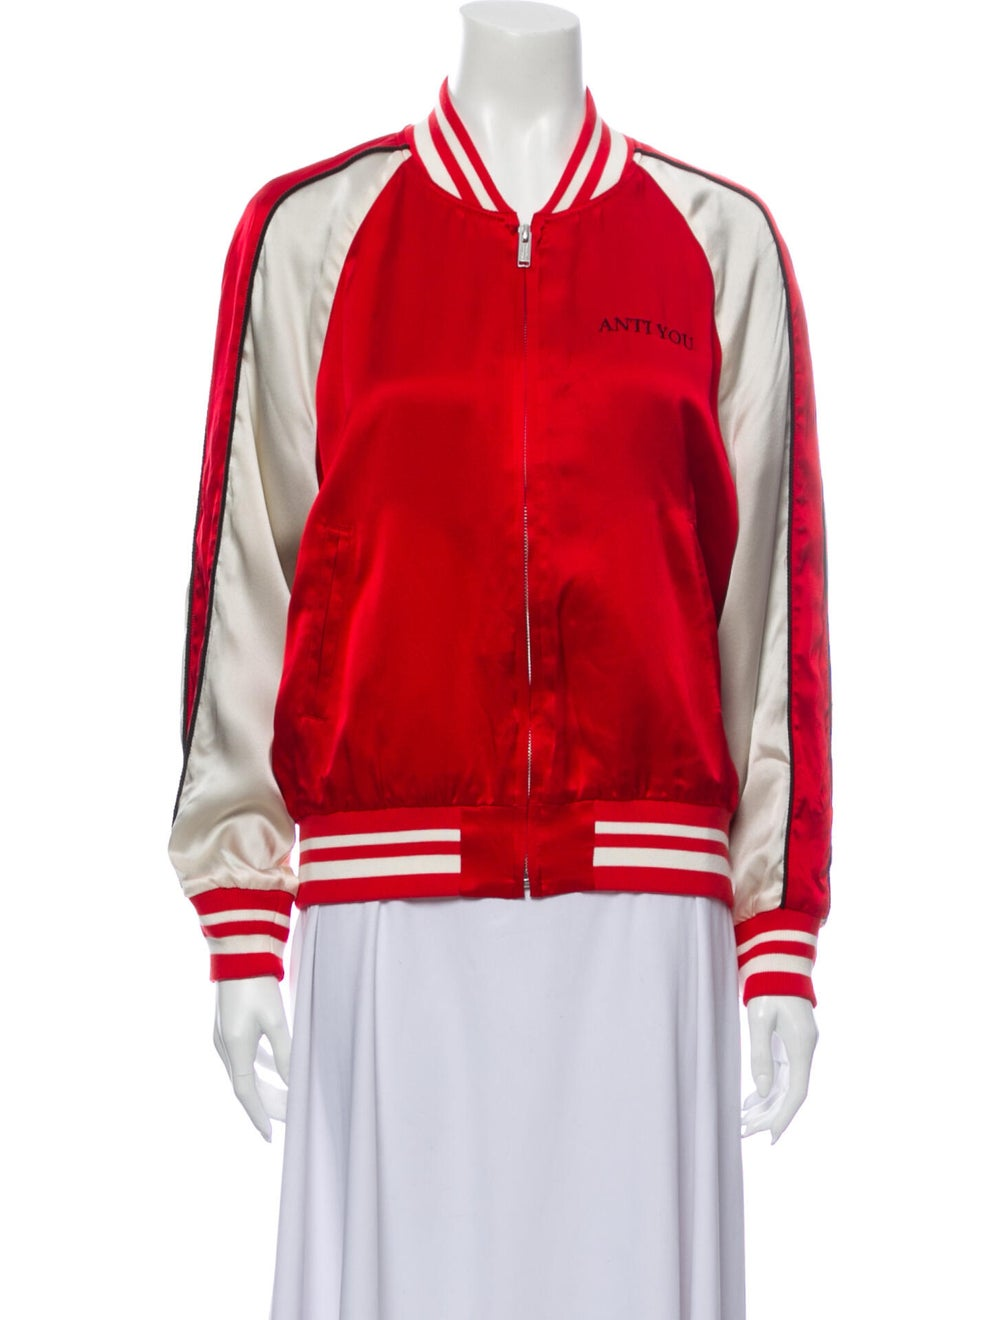 Undercover Silk Striped Bomber Jacket w/ Tags Red - image 1